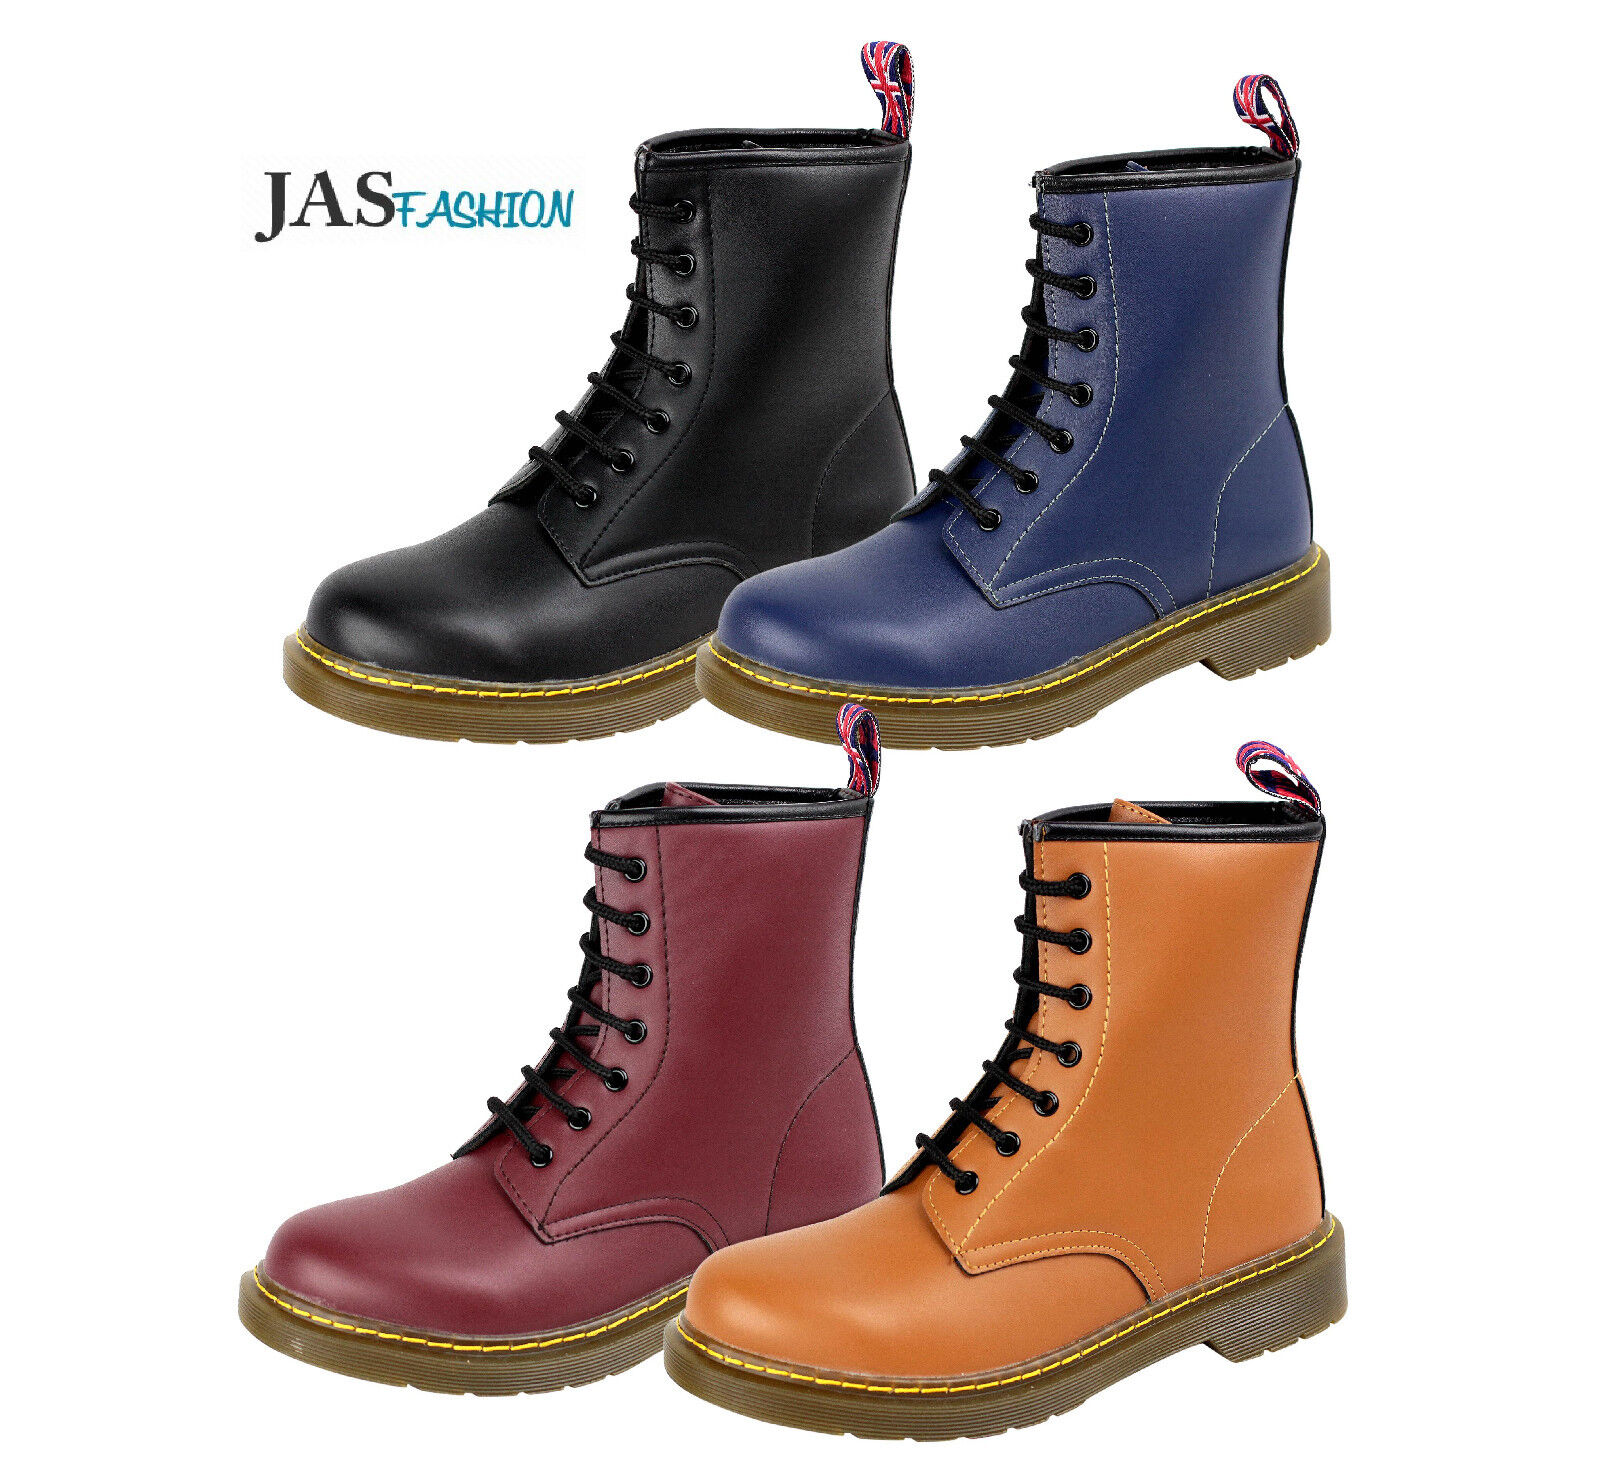 Ladies Ankle Casual Boots Womens Girls Riding Biker Shoes Half Mid Calf Size 3-9